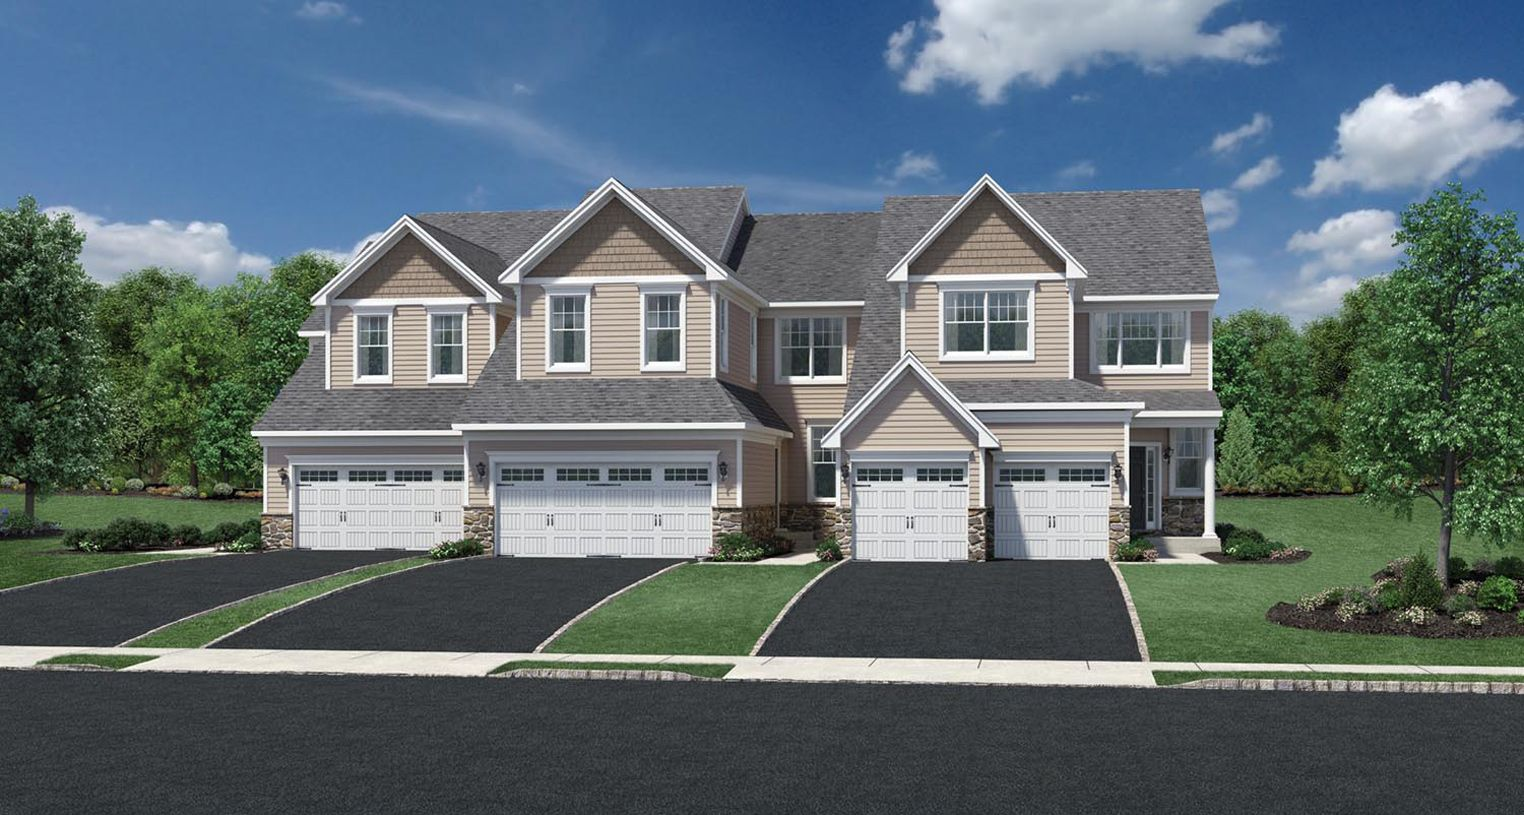 Danbury Homes For Sale Homes For Sale In Danbury Ct